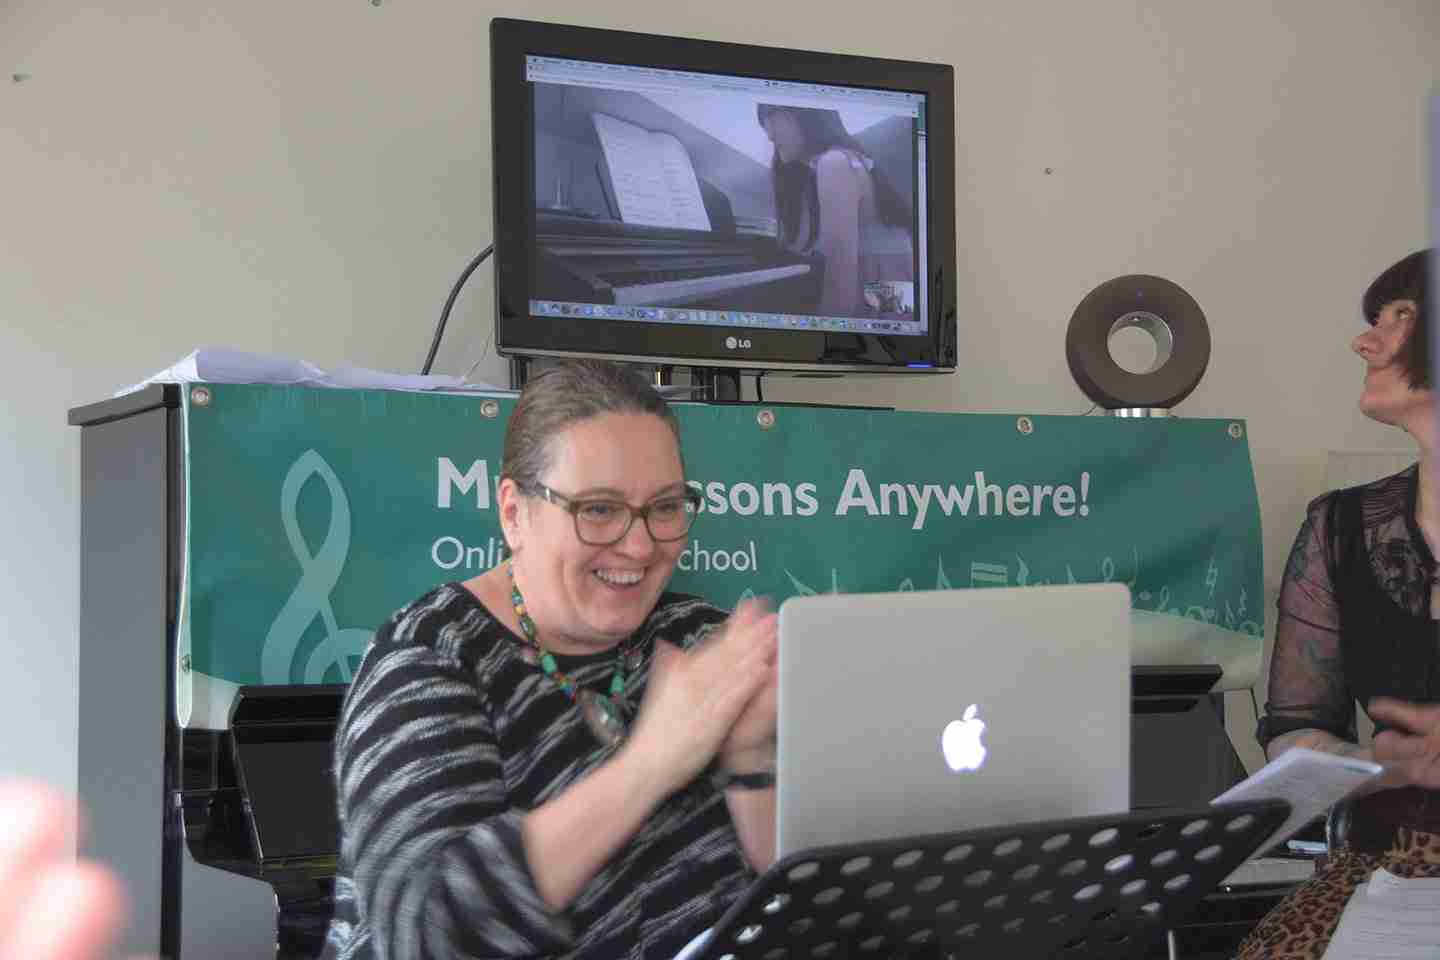 Music Lessons Anywhere Skype piano lessons online